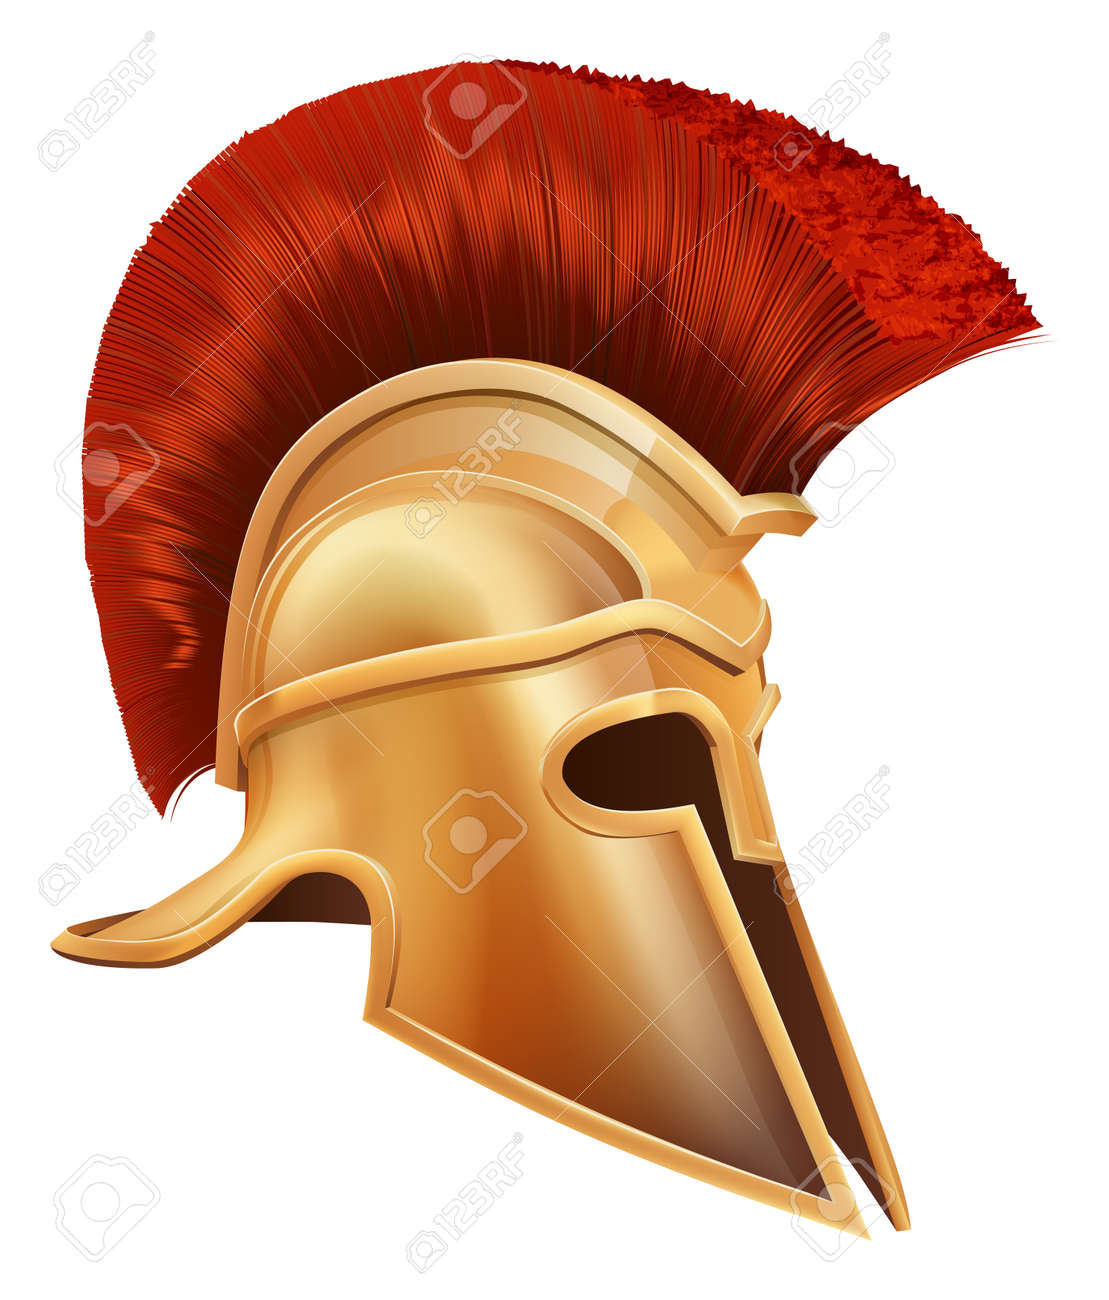 Illustration of an ancient Greek Warrior helmet, Spartan helmet, Roman helmet or Trojan helmet. Stock Vector - 14052145